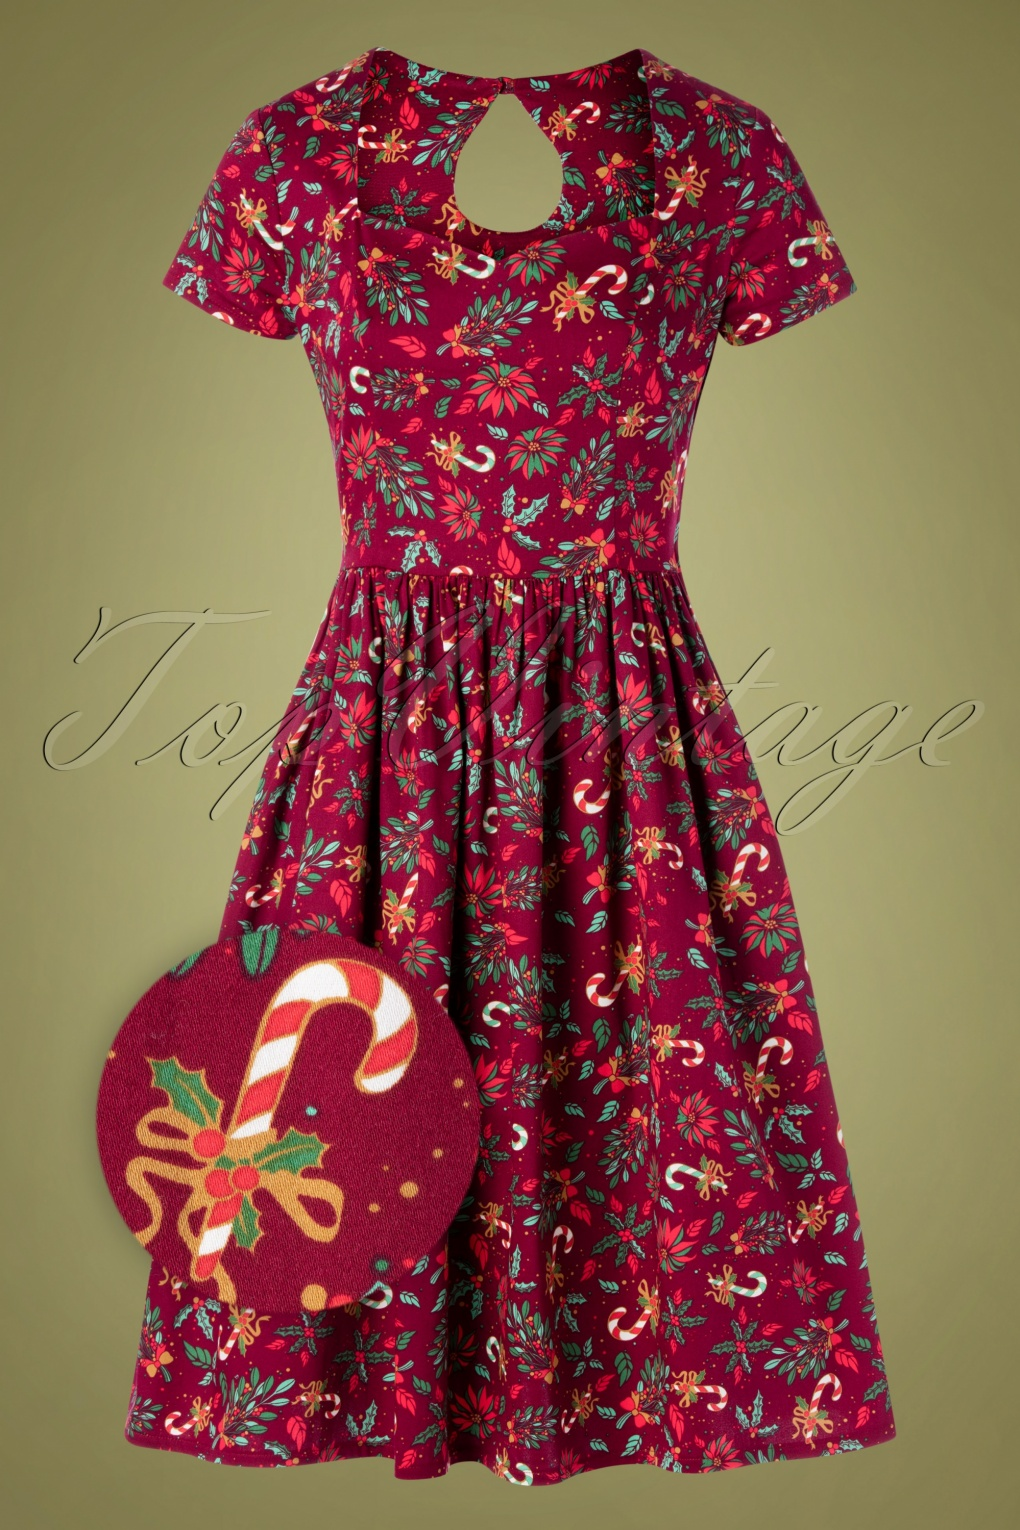 Vintage Christmas Gift Ideas for Women 50s Mistletoe and Wine Dress in Burgundy £46.30 AT vintagedancer.com